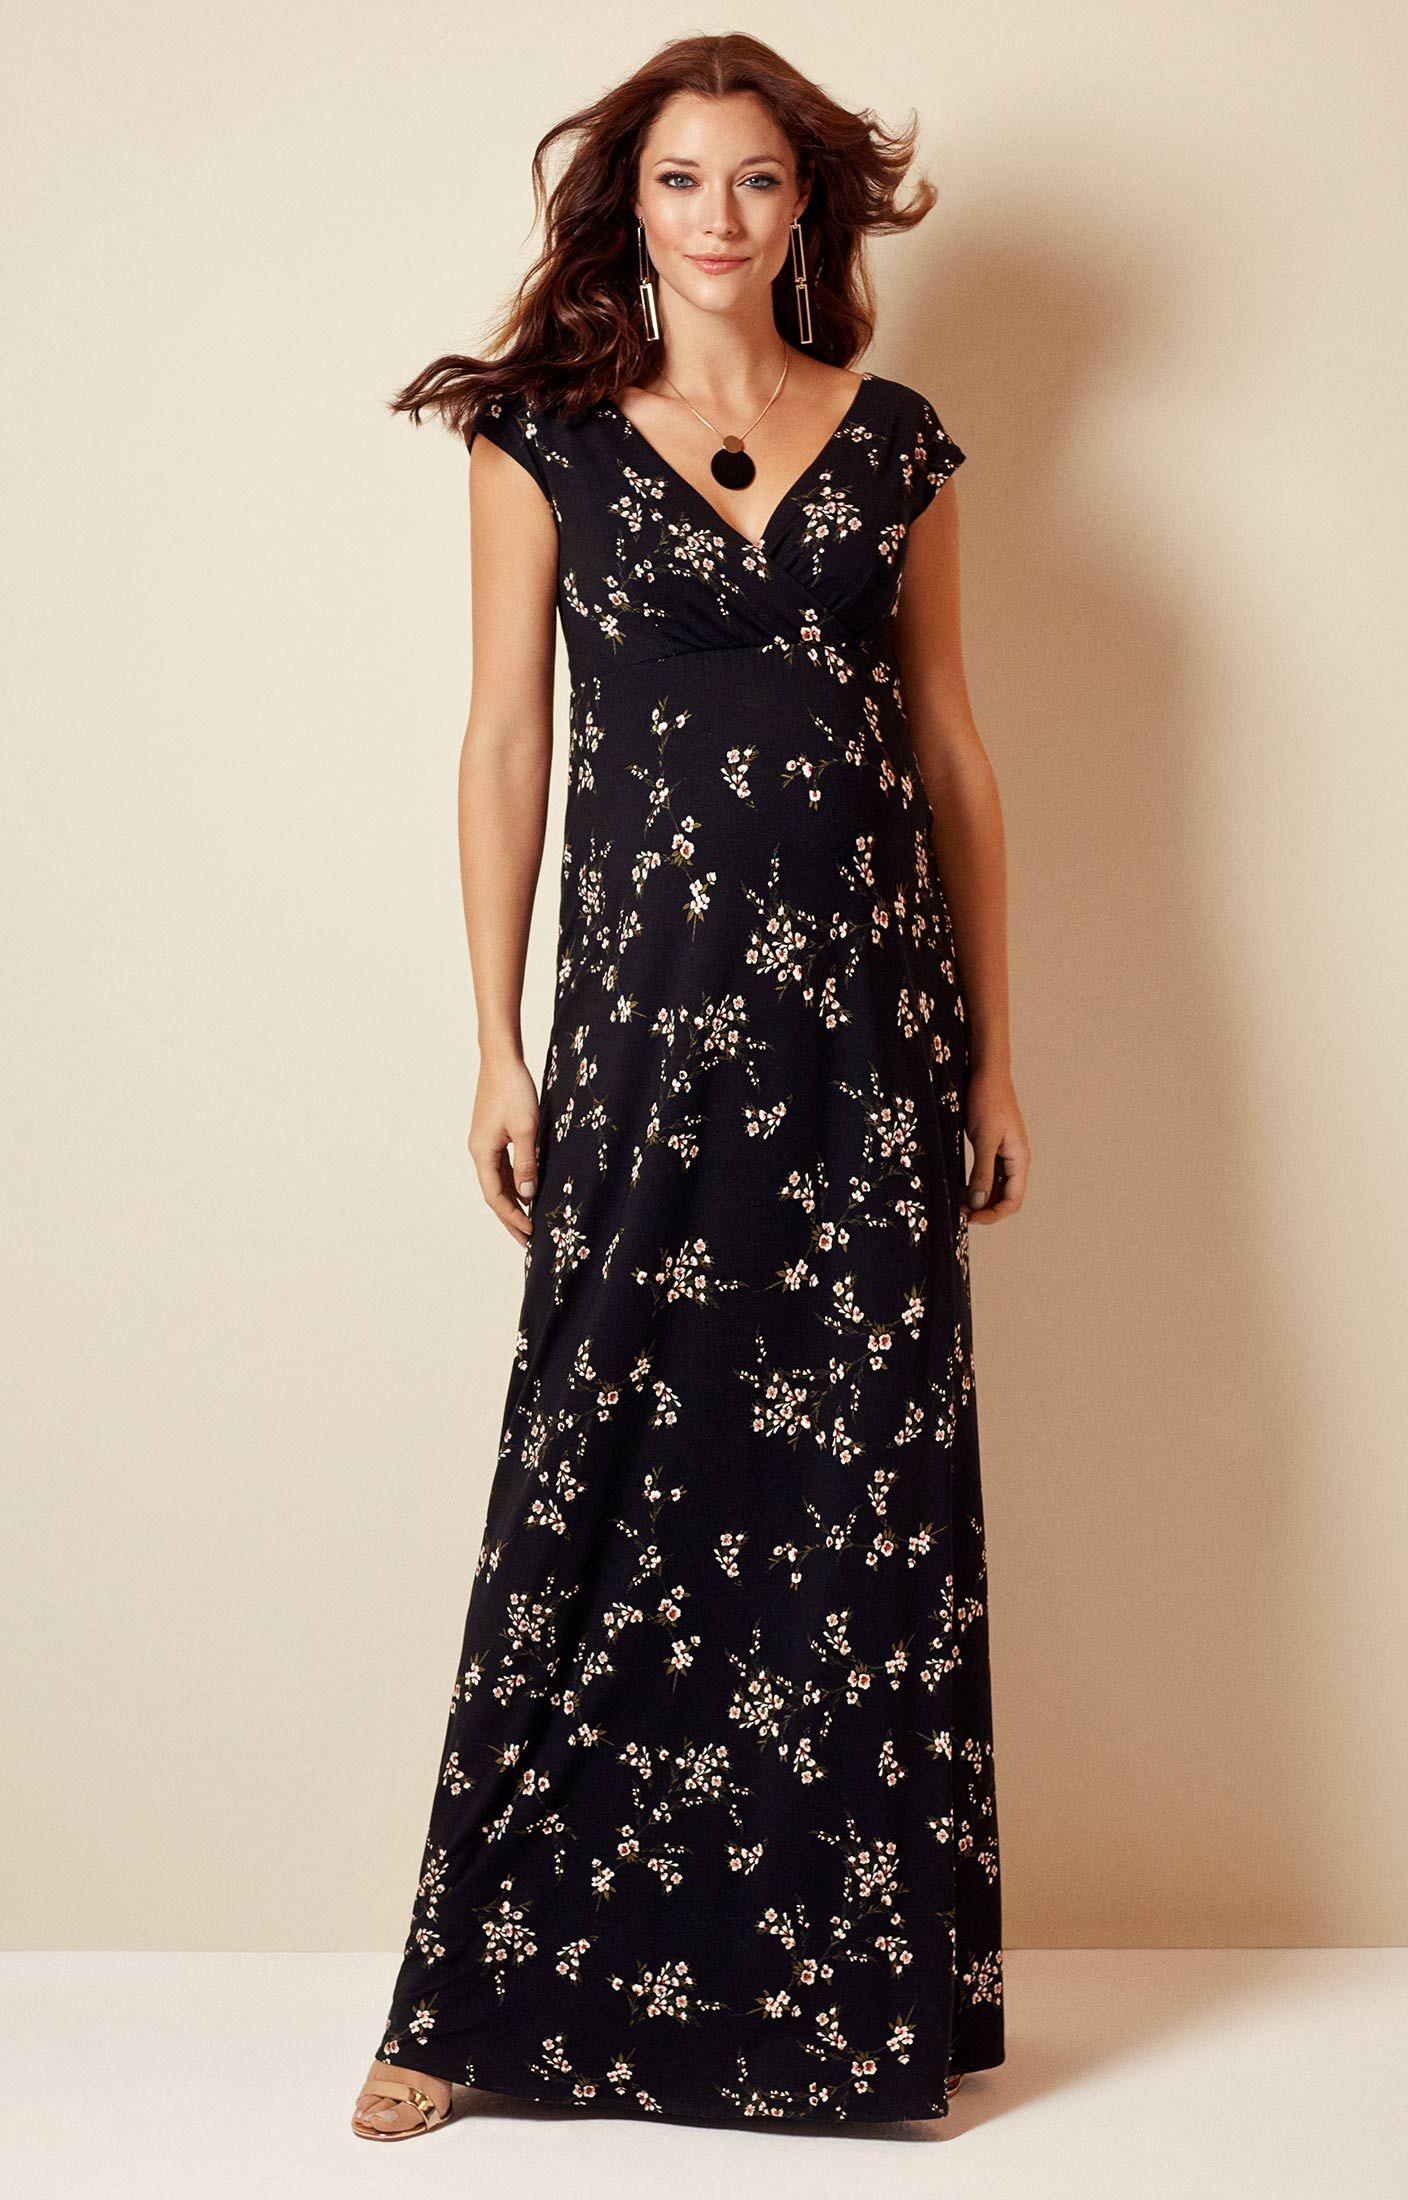 a9d7047fd754f With a hint of oriental charm, our Alana maternity maxi dress has a  beautiful blossom print that is striking against a jet black backdrop.